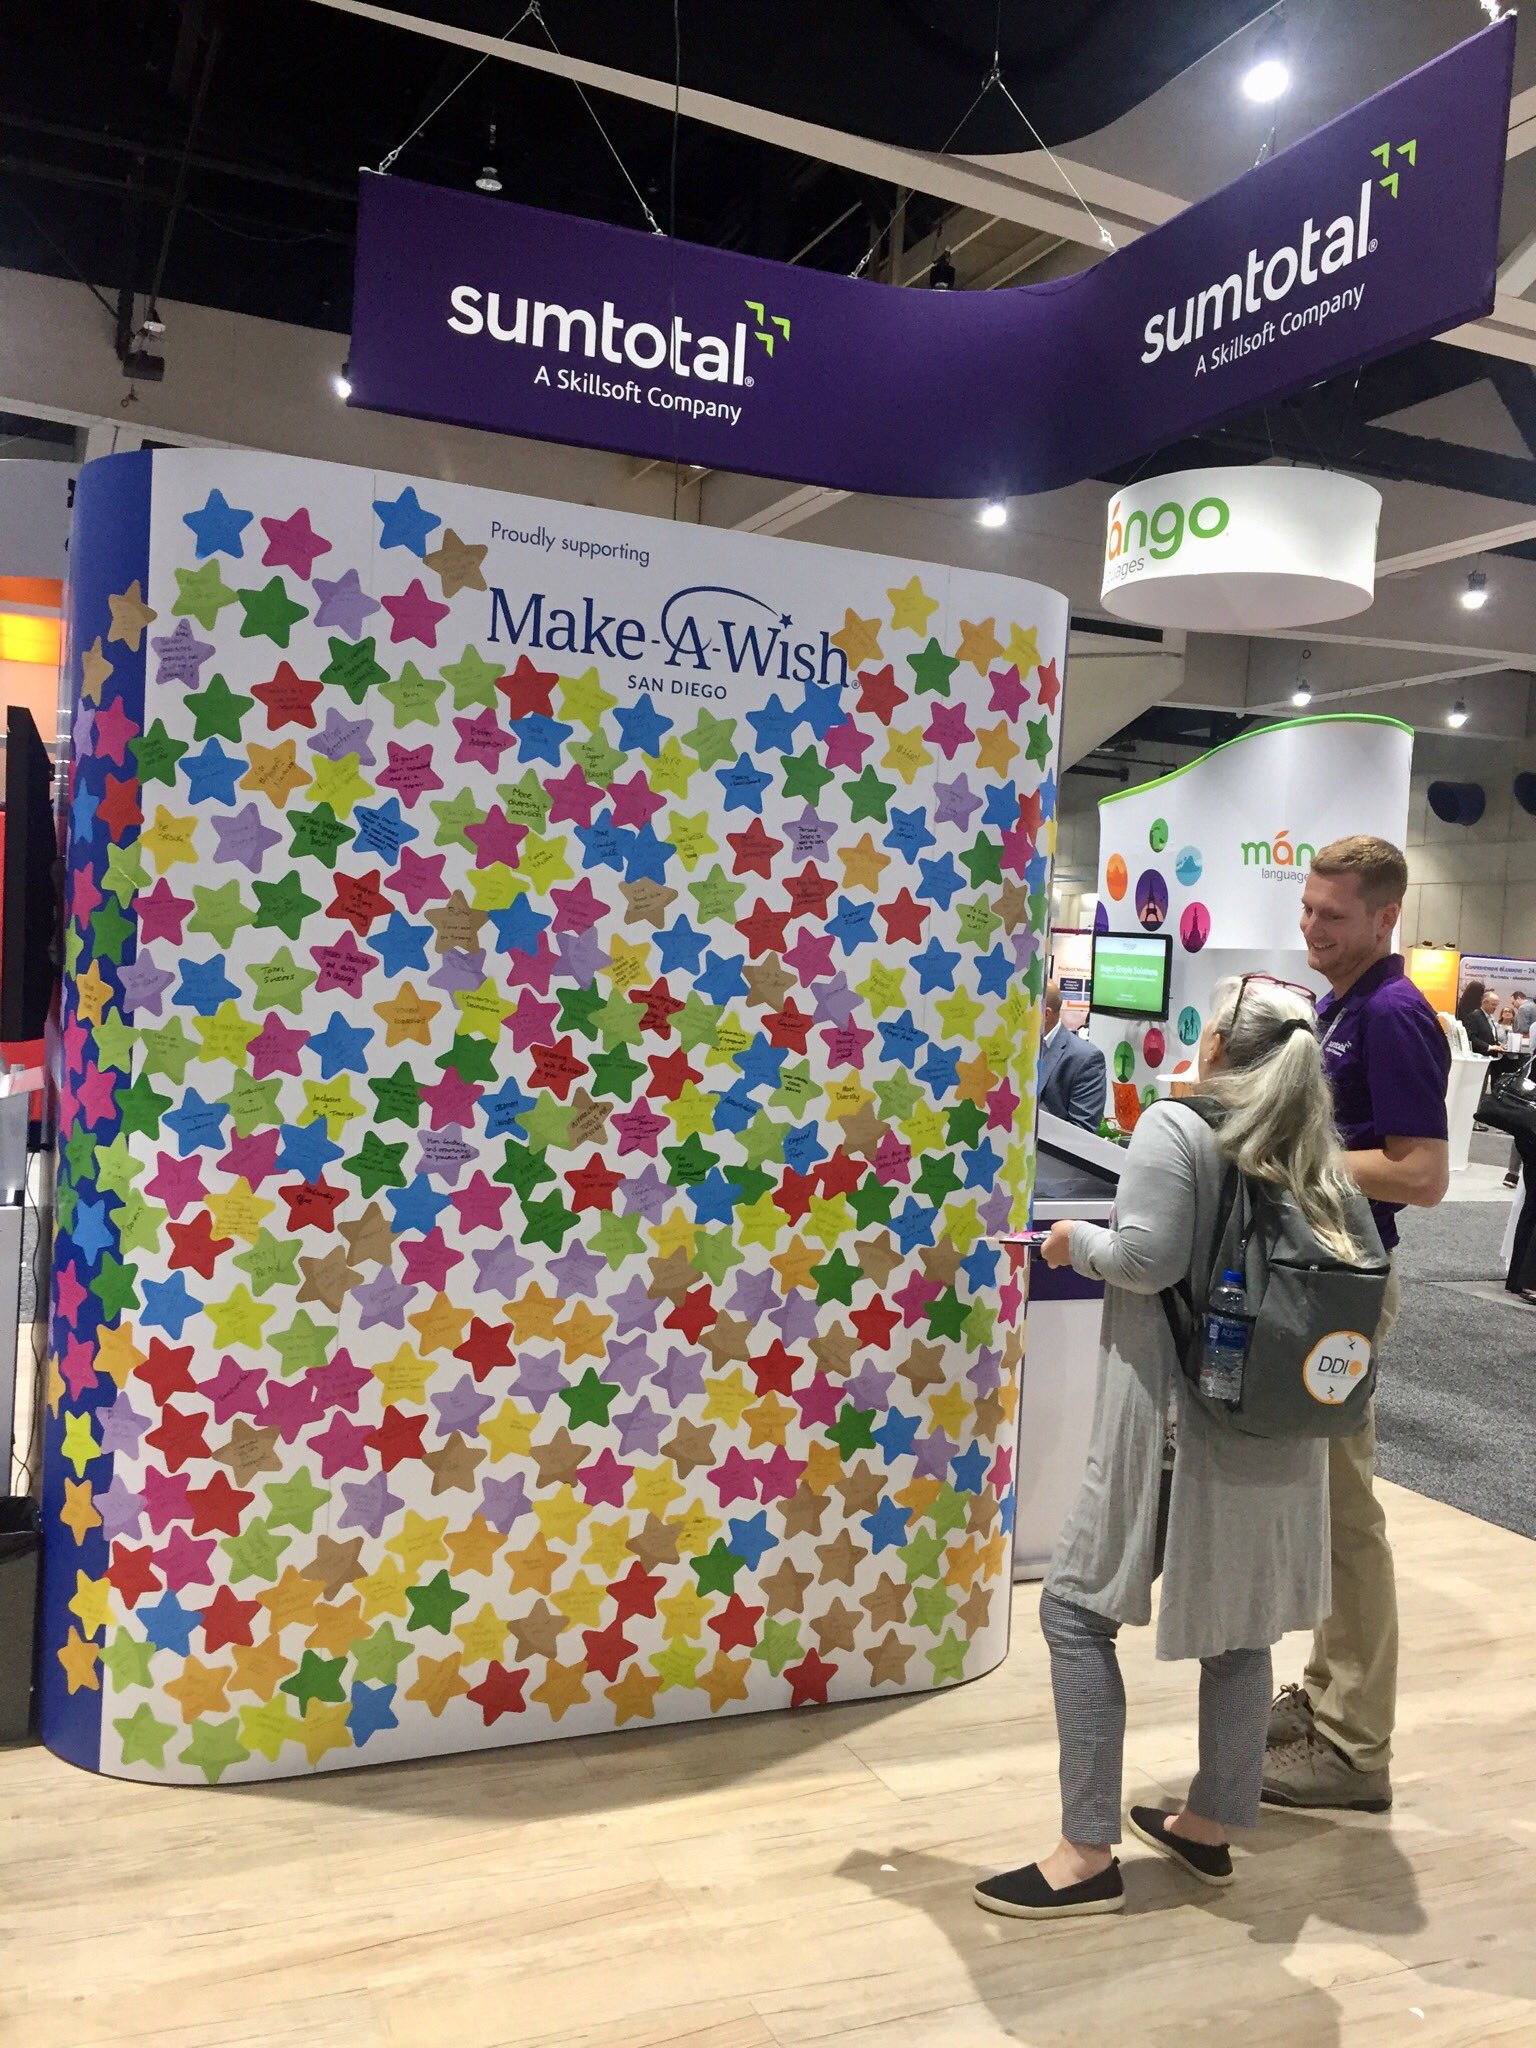 What an absolutely action-packed day 2 of #ATD2018. People have put so much thought and creativity into their HR wishes! It's been amazing to get to discuss L&D hopes and desires, and support a great cause at the same time. @SumTotalSystems @Skillsoft #MakeAWish https://t.co/3XqyaXMmTx